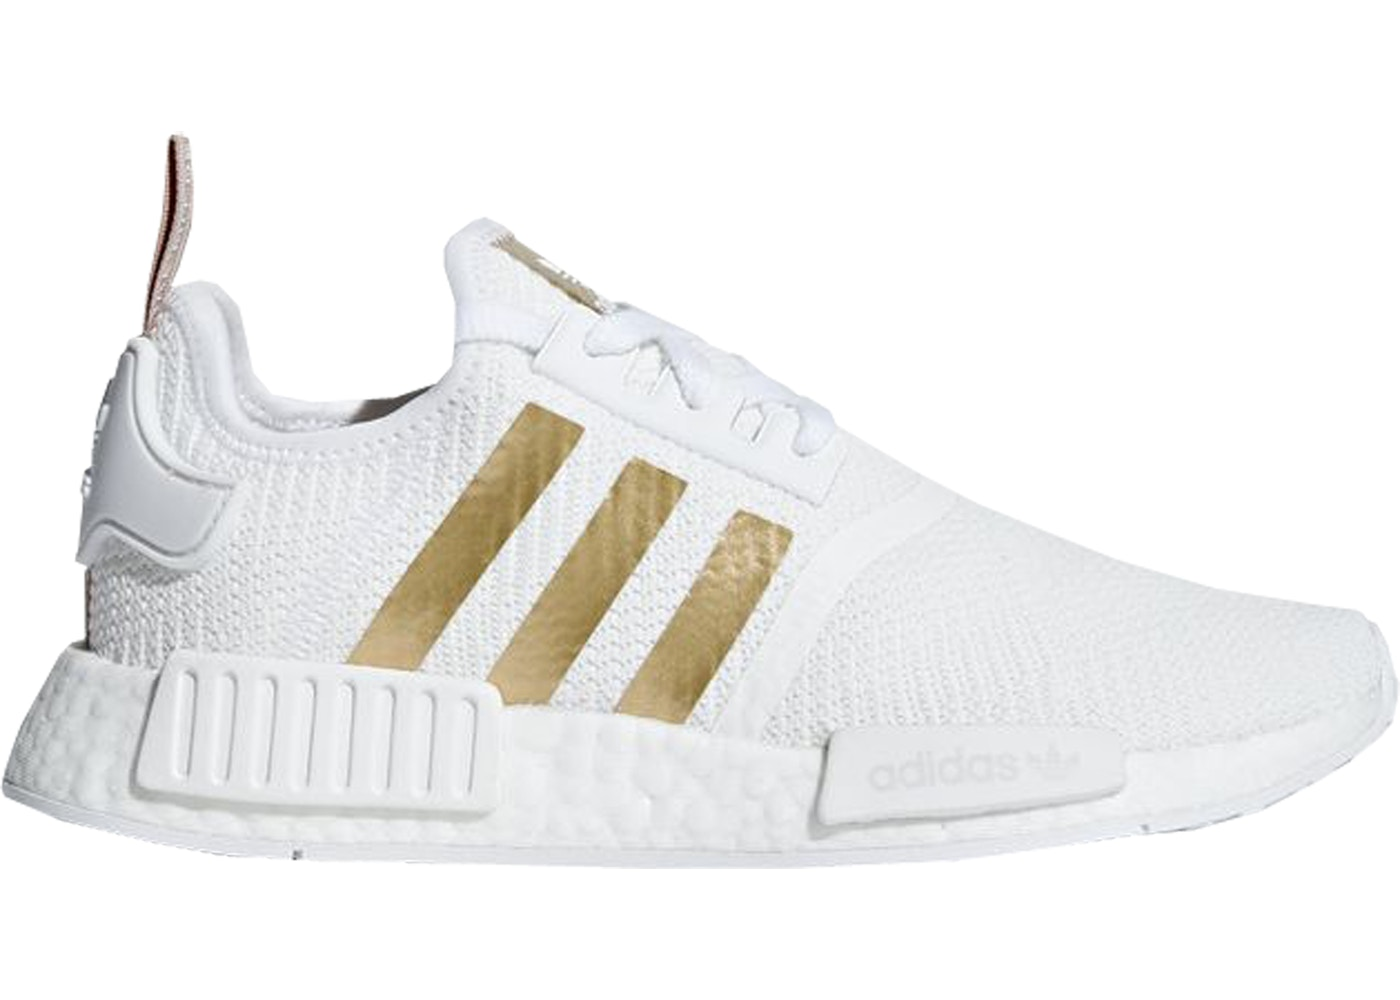 Nmd MetallicwB37650 Adidas R1 Copper Cloud White 0wvNnmO8